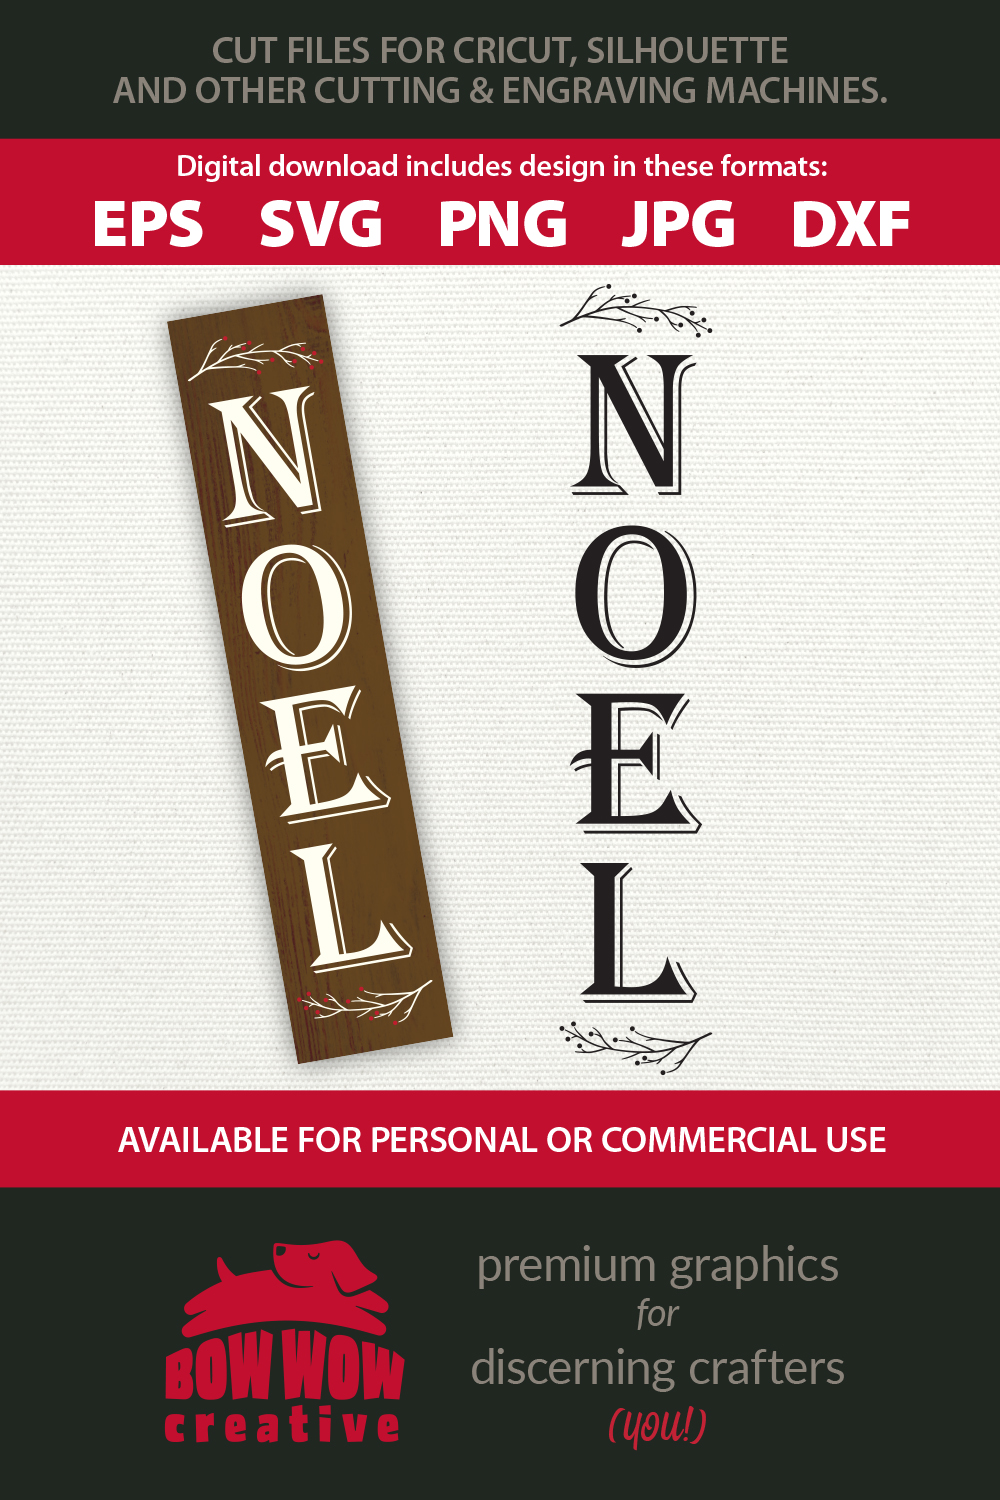 Christmas vertical porch sign - Noel - EPS SVG PNG JPG DXF example image 2